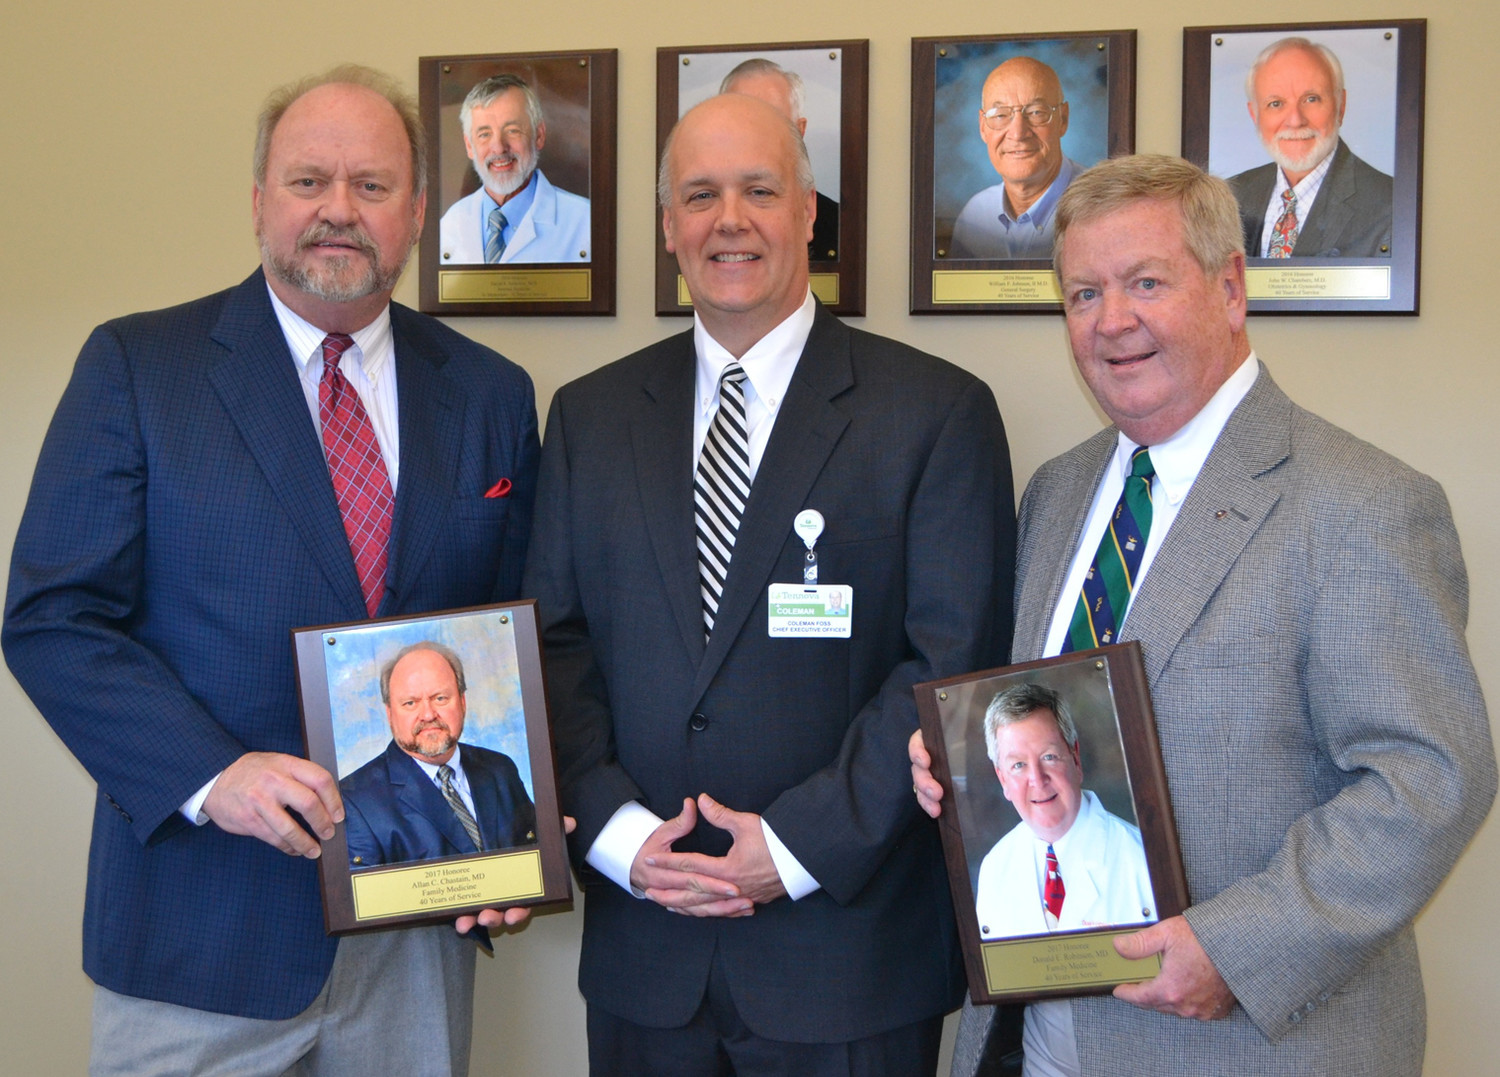 TENNOVA-HEALTHCARE CLEVELAND CEO Coleman Foss, center, presented photographs to both Dr. Allan Chastain, left, and Dr. Don Robinson, to be placed on the hospital's Wall of Honor for the 40-plus year hospital veterans.